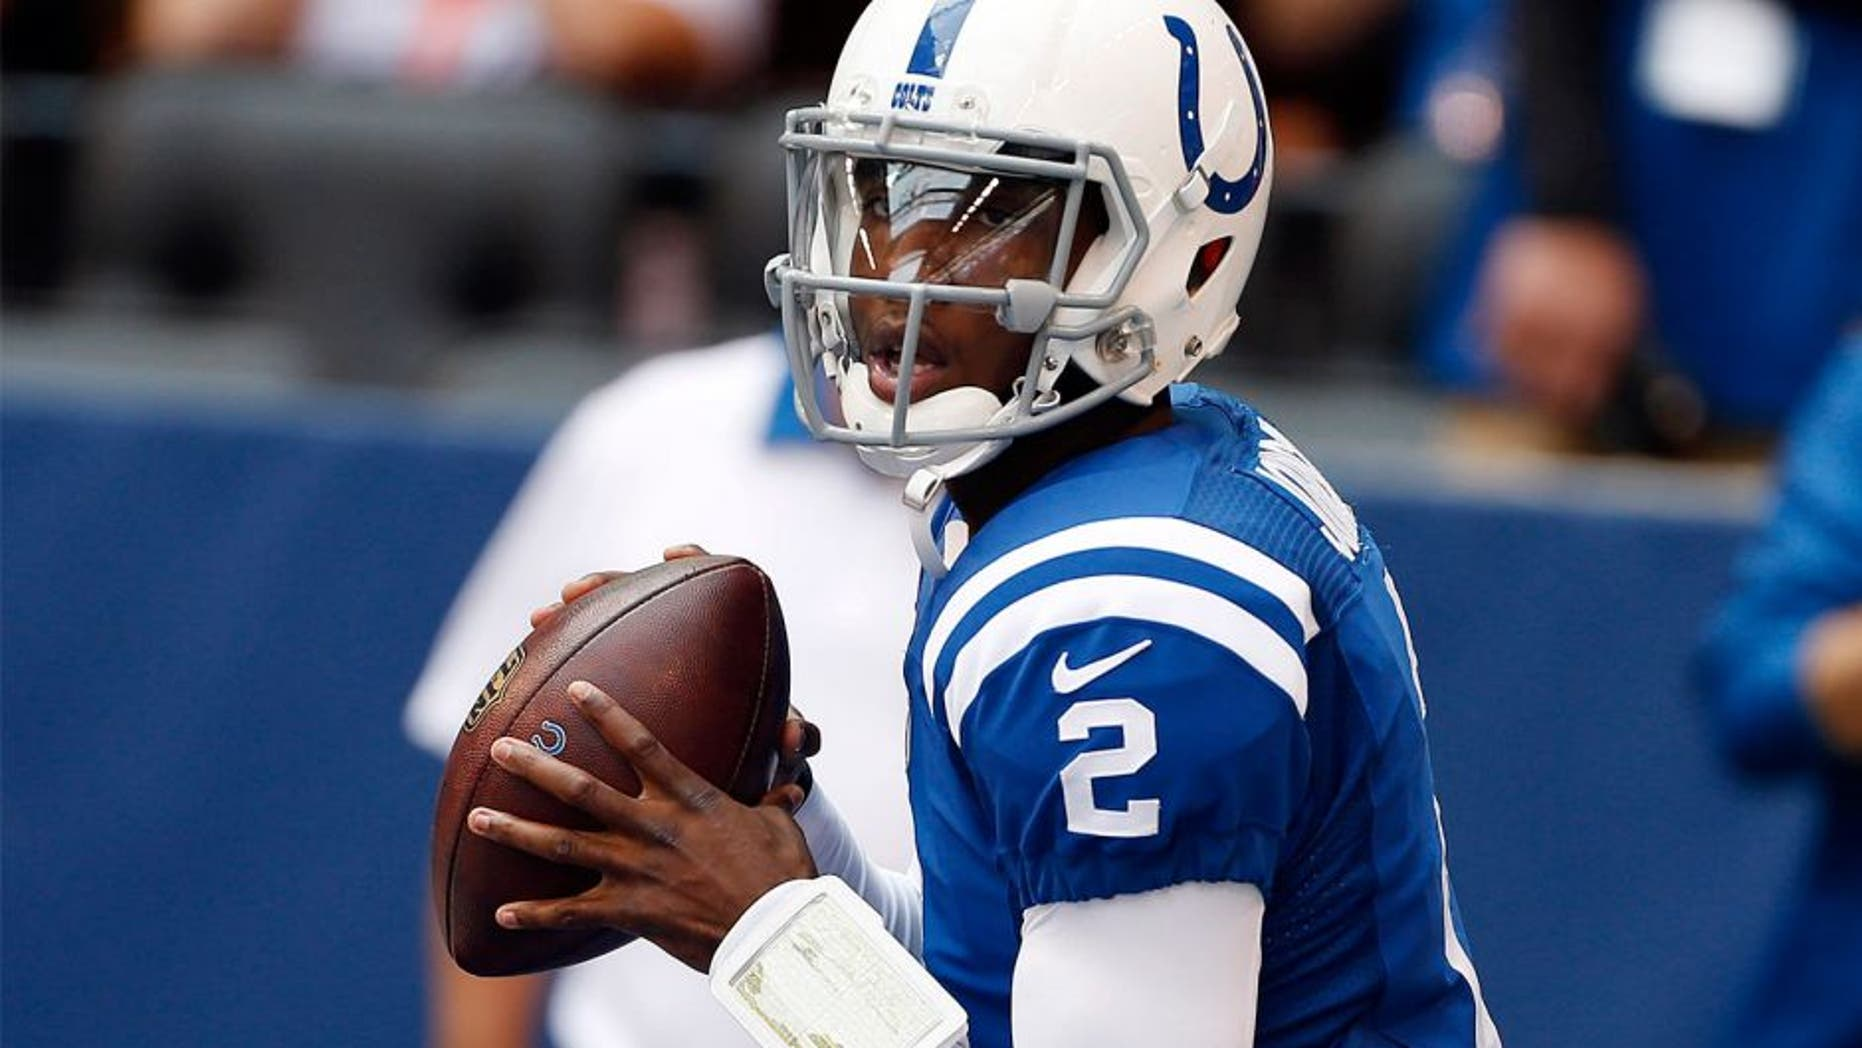 Oct 4, 2015; Indianapolis, IN, USA; Indianapolis Colts quarterback Josh Johnson (2) warms up before the game against the Jacksonville Jaguars at Lucas Oil Stadium. Mandatory Credit: Brian Spurlock-USA TODAY Sports